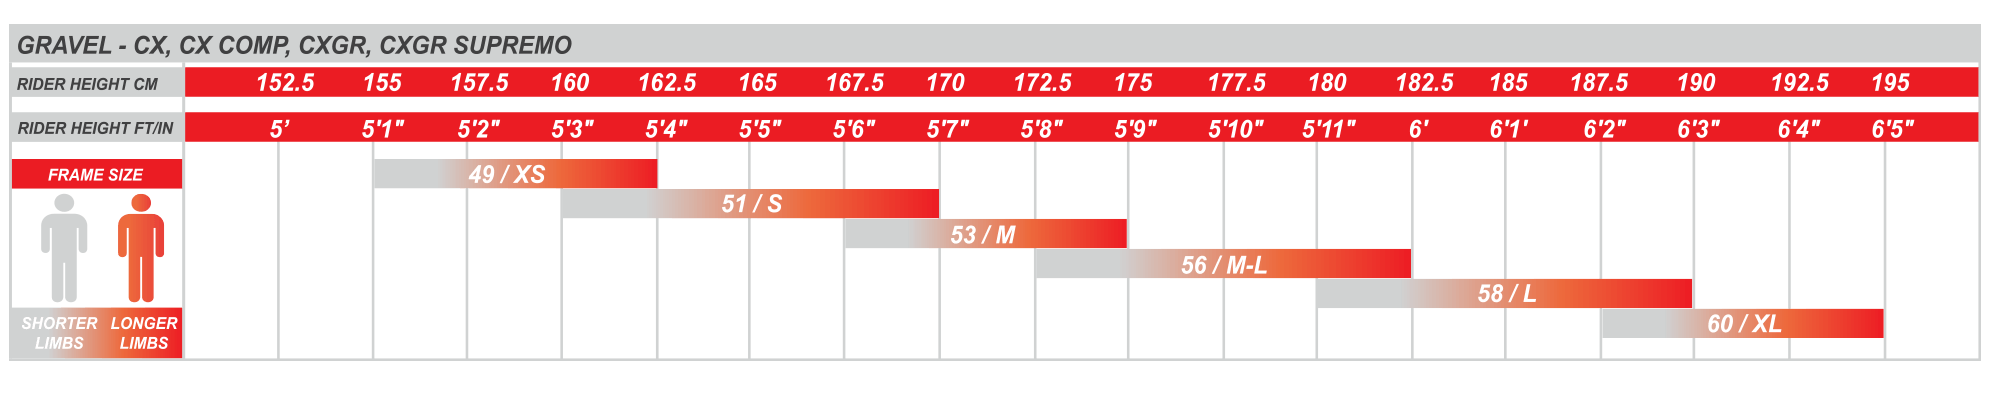 geo-size-chart-gravel-cx-2018.2.png